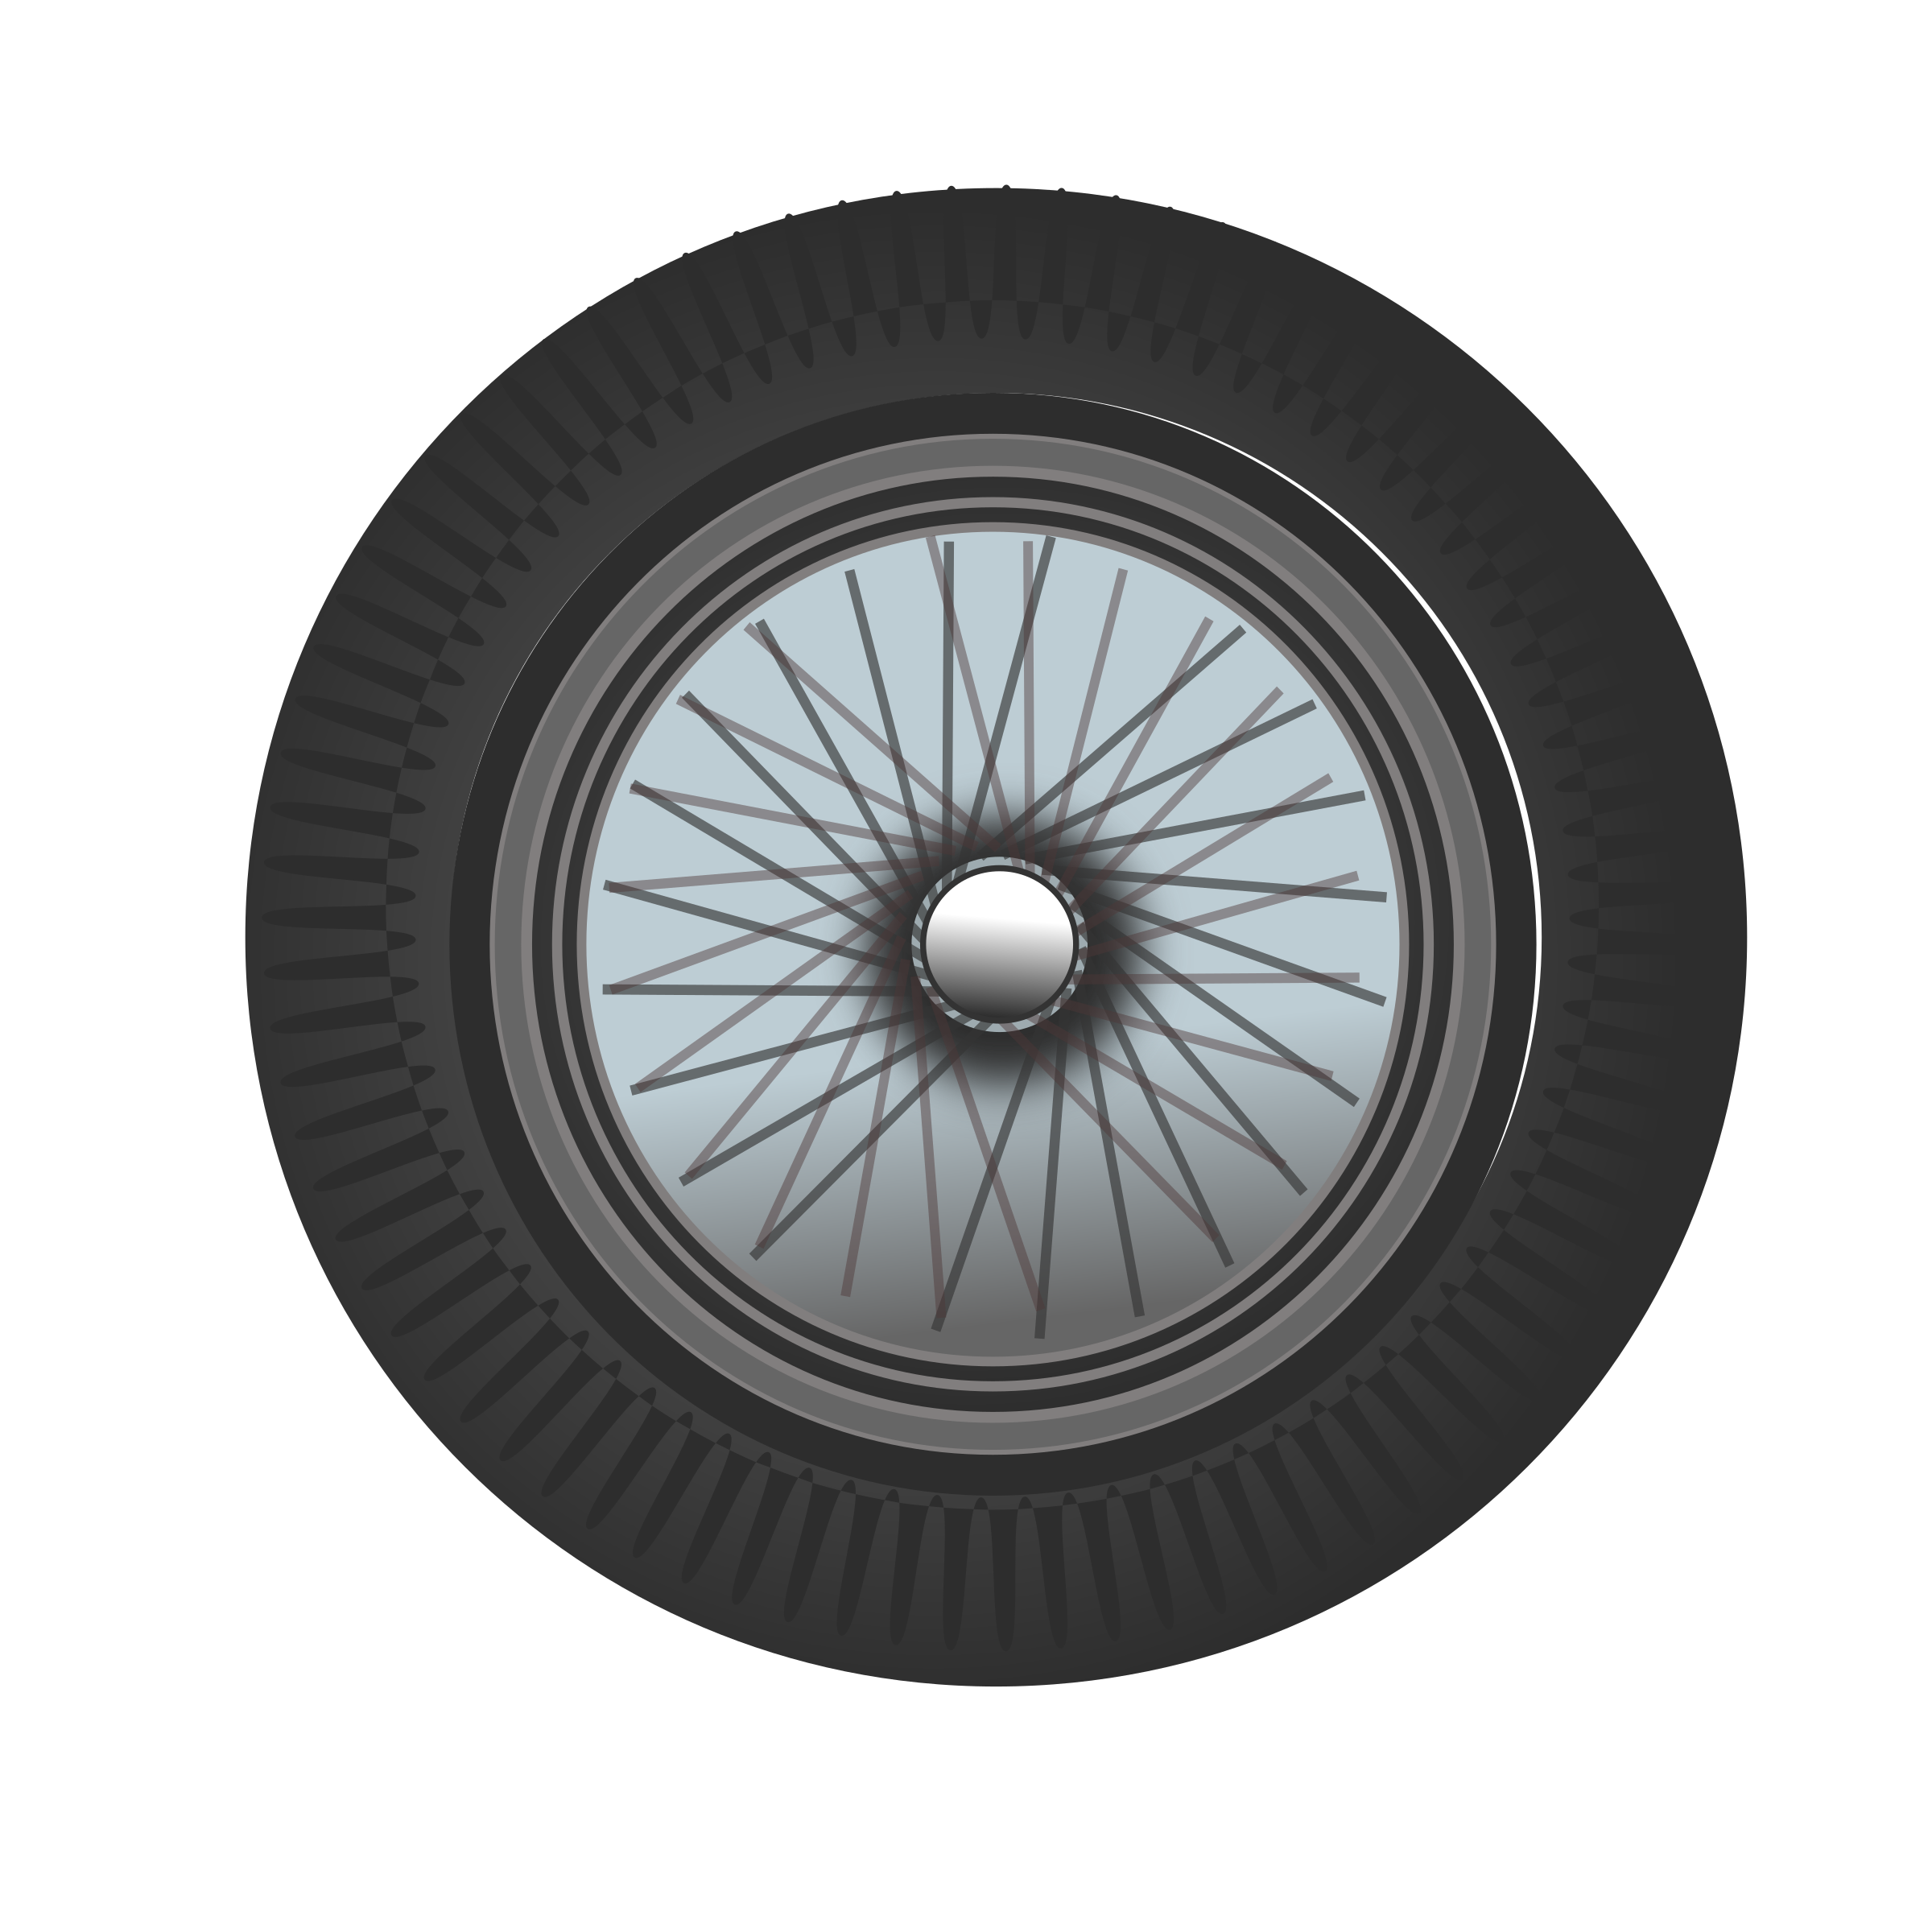 Classic car wheel big. Motorcycle clipart motorcycle burnout